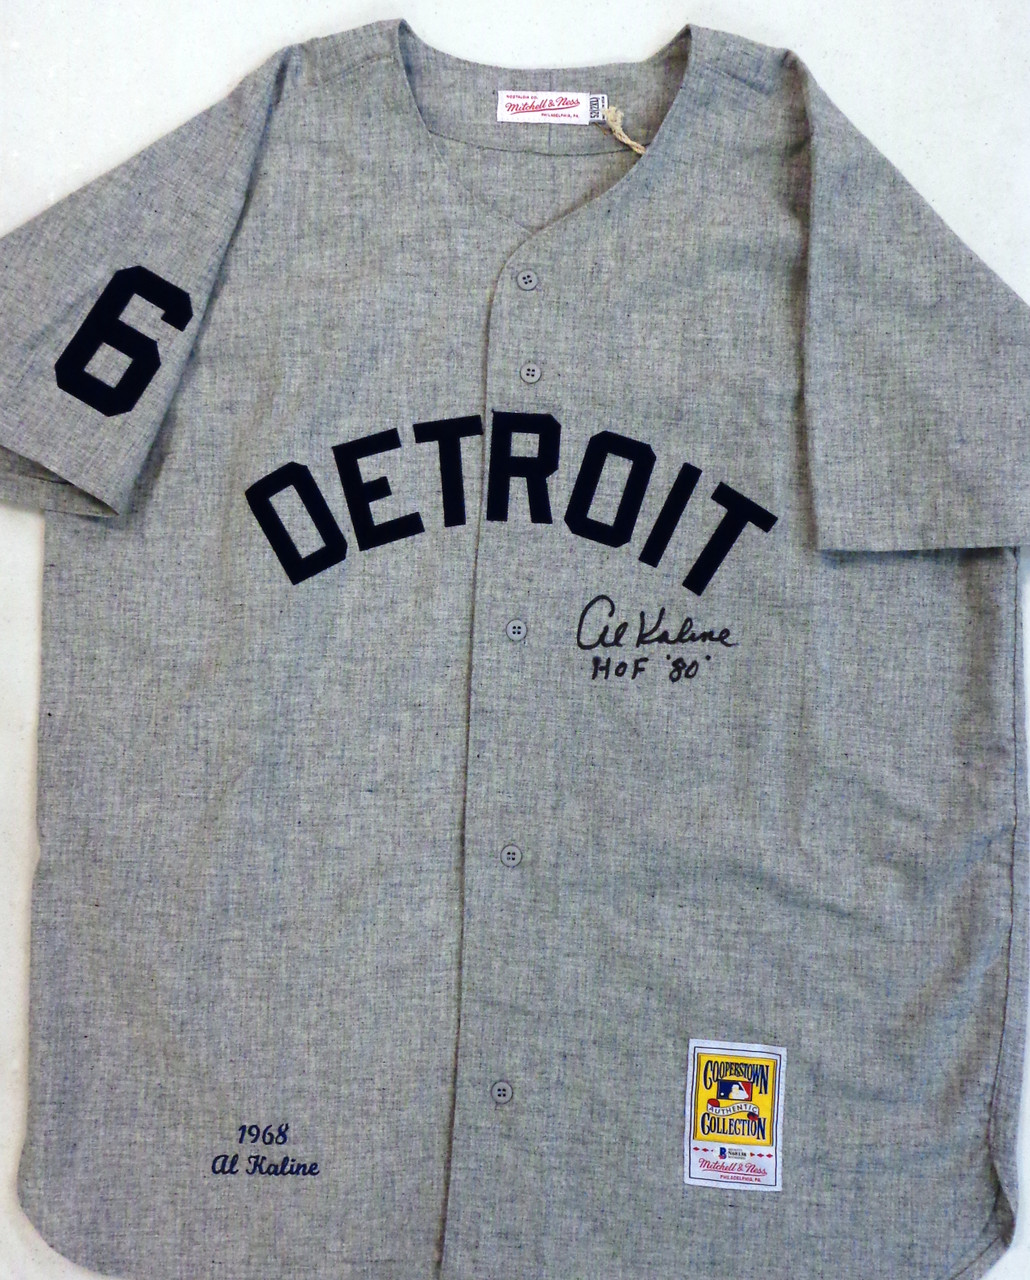 b2260a1f6 Home · Autographed Jerseys; Al Kaline Autographed Detroit Tigers 1968 Road  Mitchell & Ness Jersey with